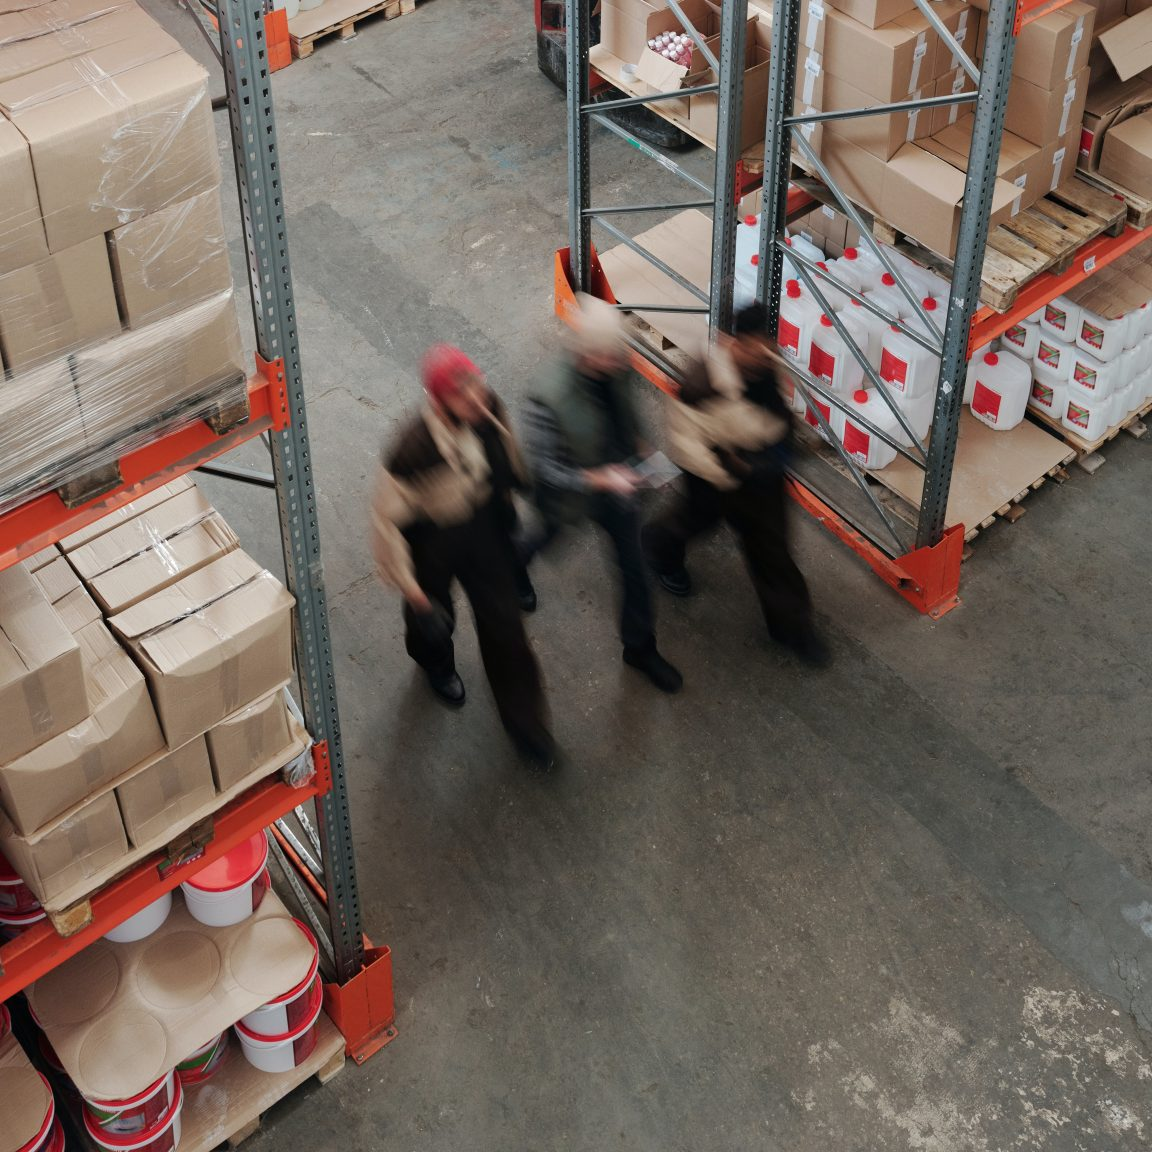 men-working-in-a-warehouse-4481324